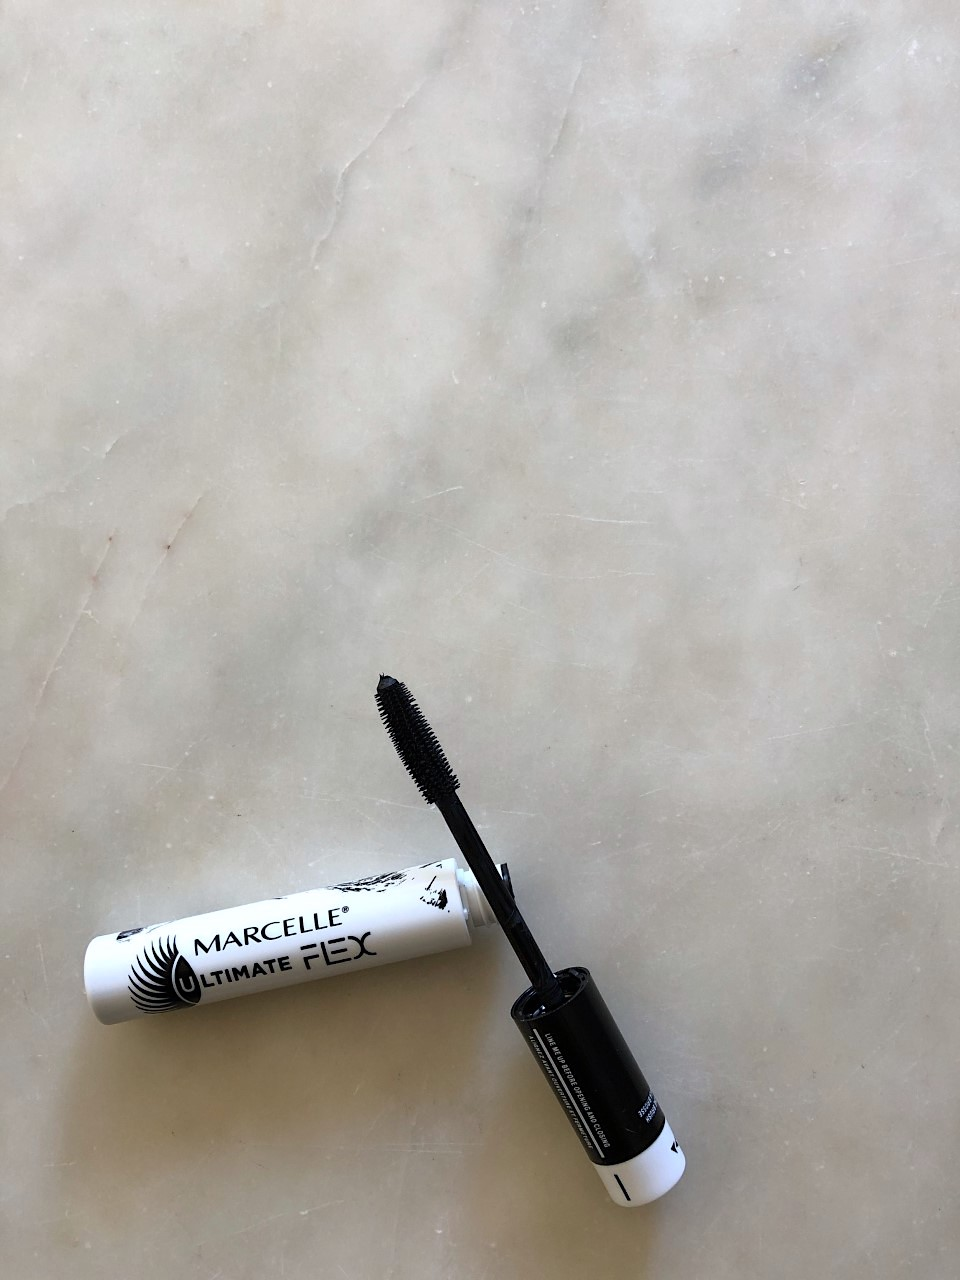 Marcelle Ultimate Flex mascara: A quick review